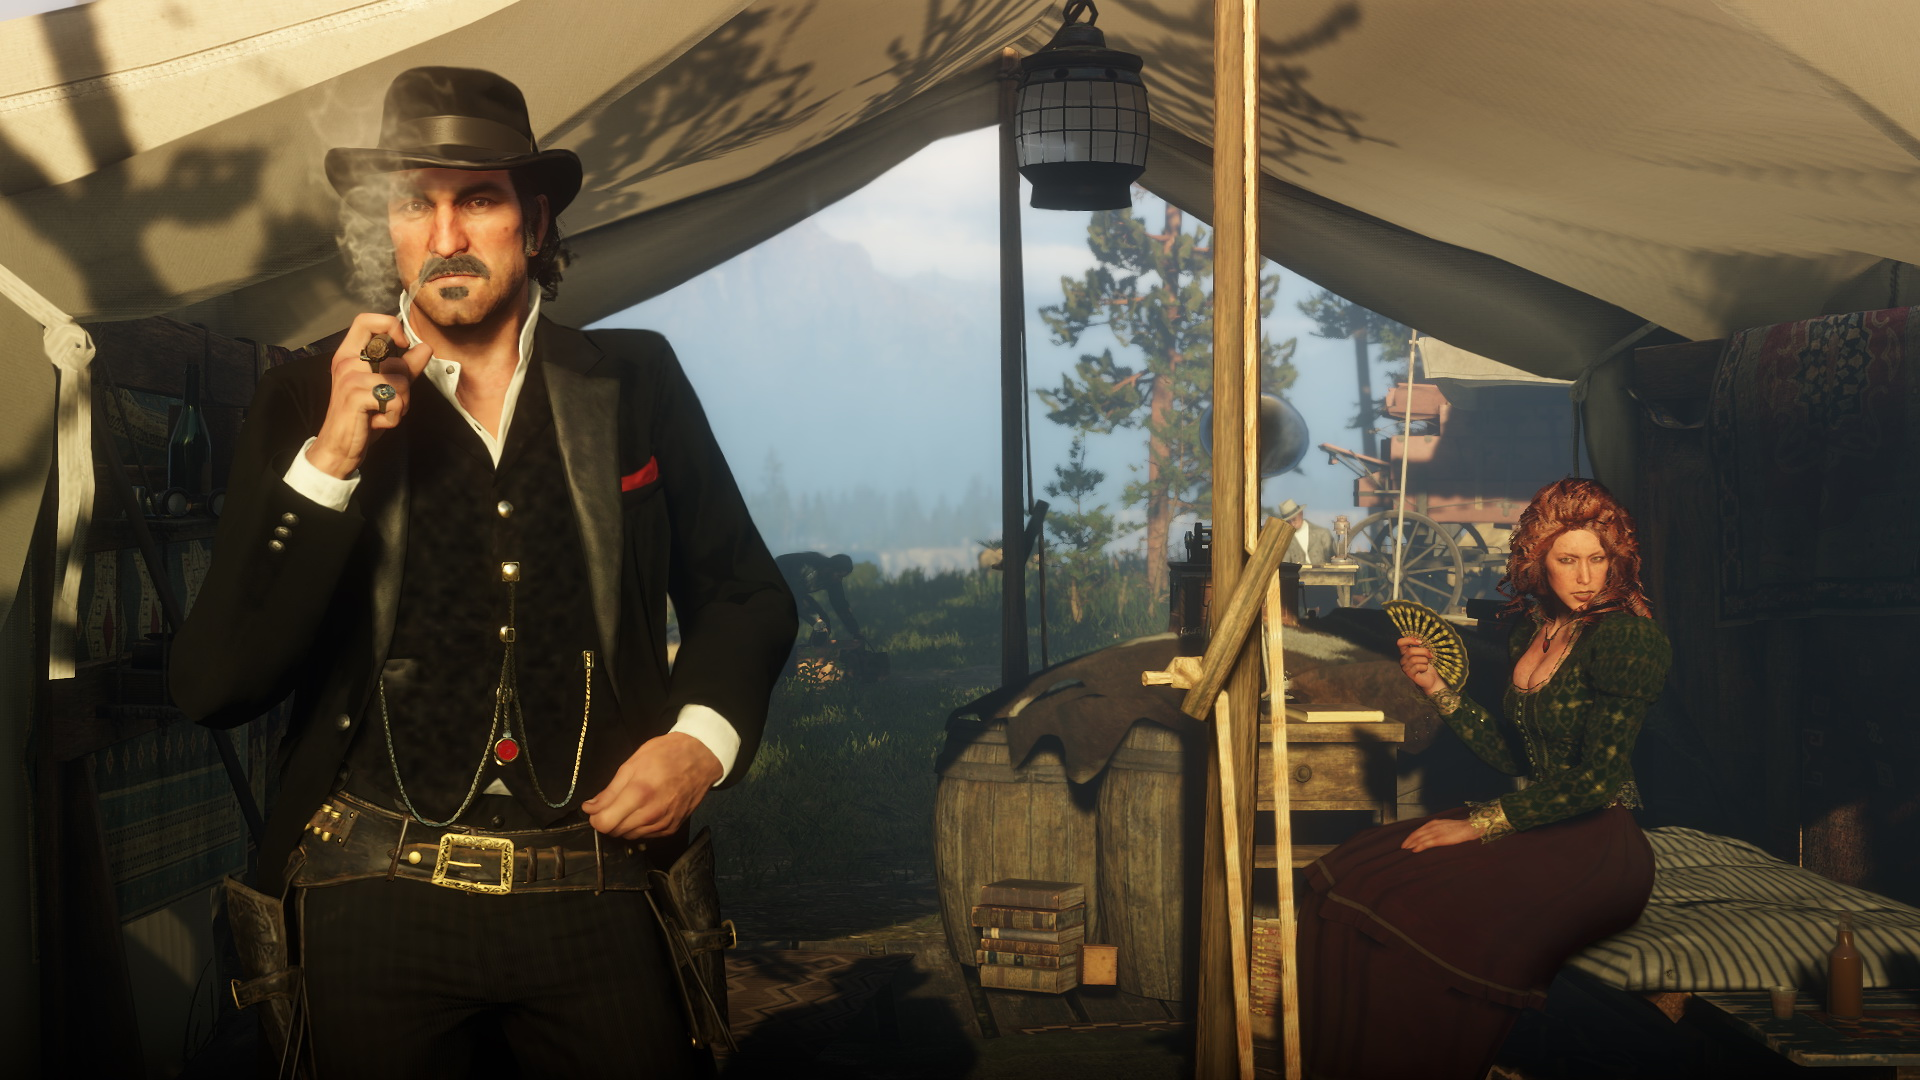 Red Dead Redemption 2 - Dutch van der Linde and Molly in a tent